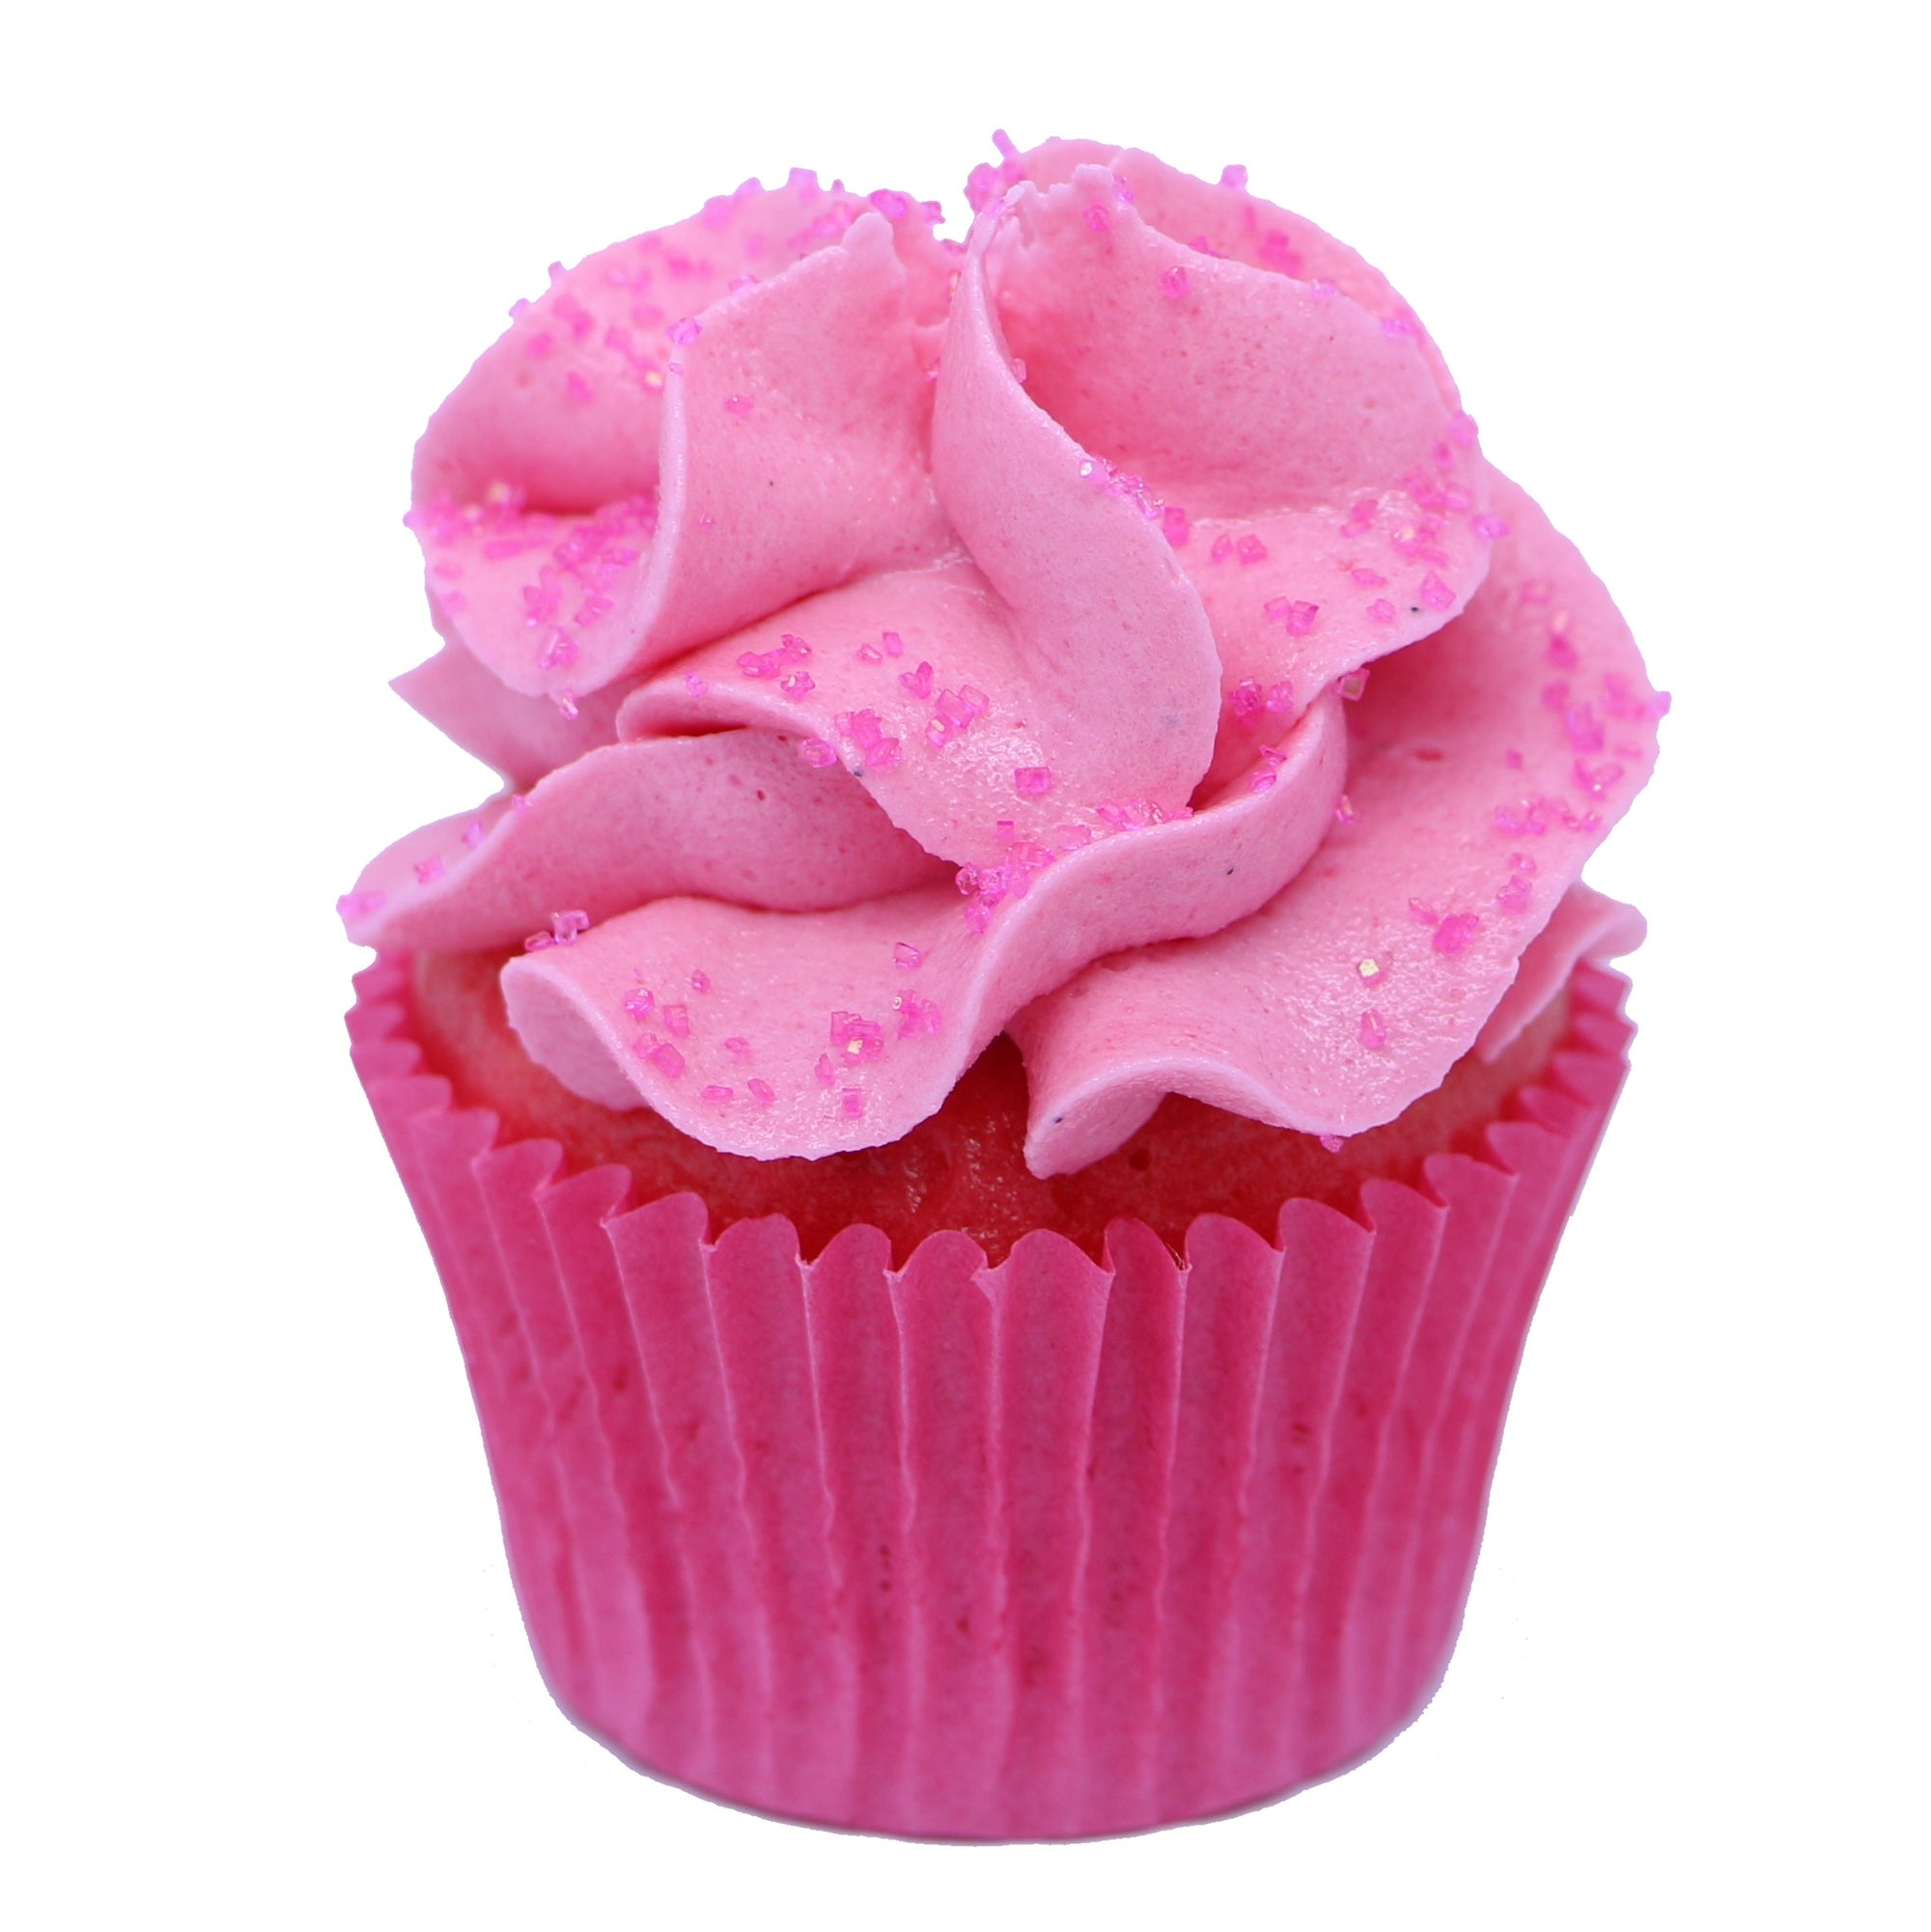 Mini Cupcake - Strawberry - Treats2eat - Wedding & Birthday Party Dessert Catering Near Me